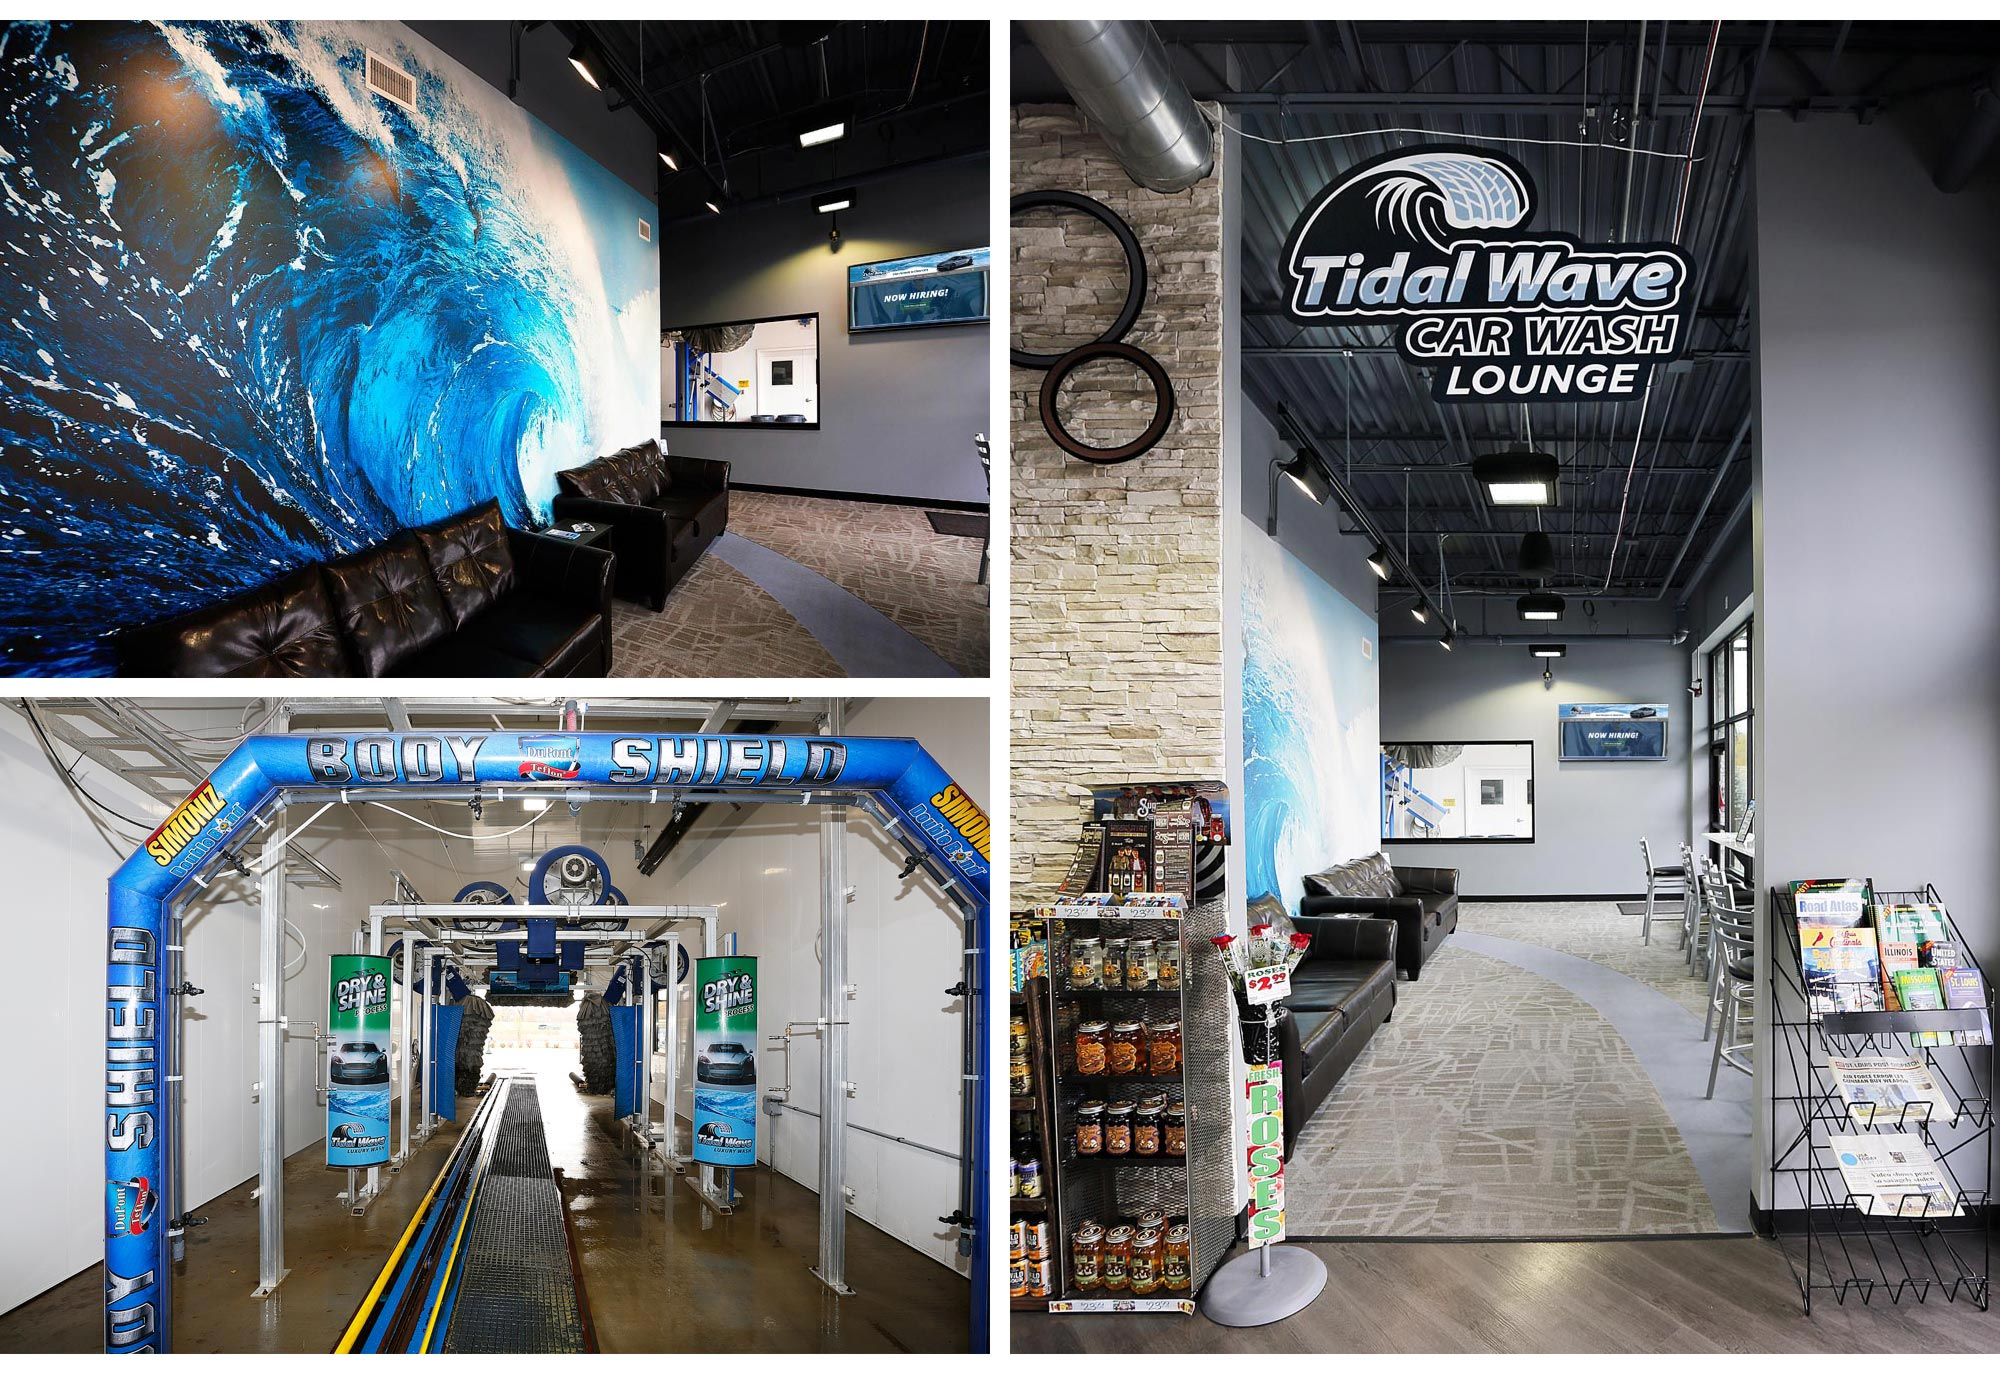 Tidal Wave waiting room sign & tunnel graphics